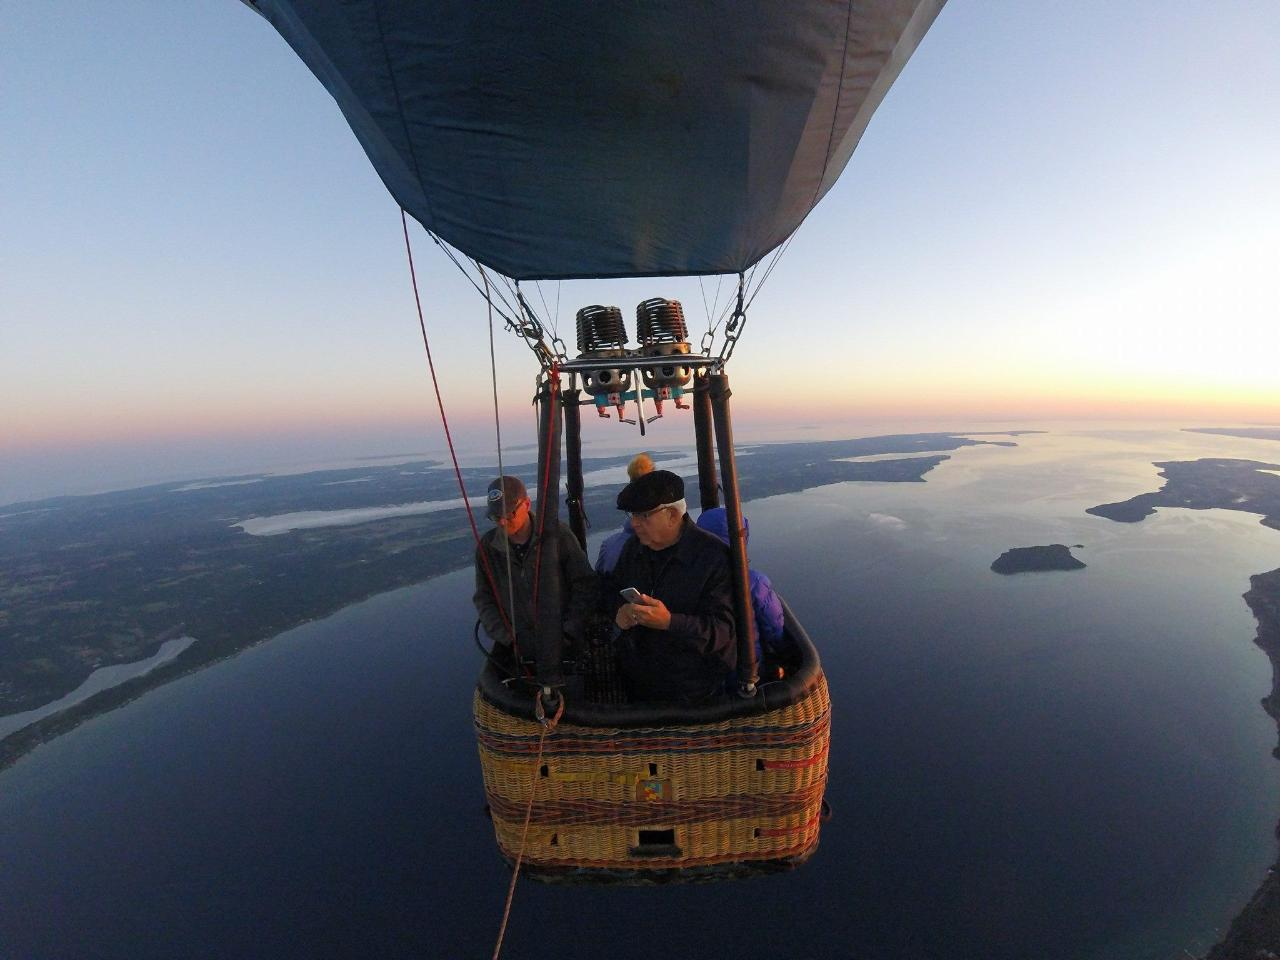 Weekend Private Flight / Small Balloon in Traverse City